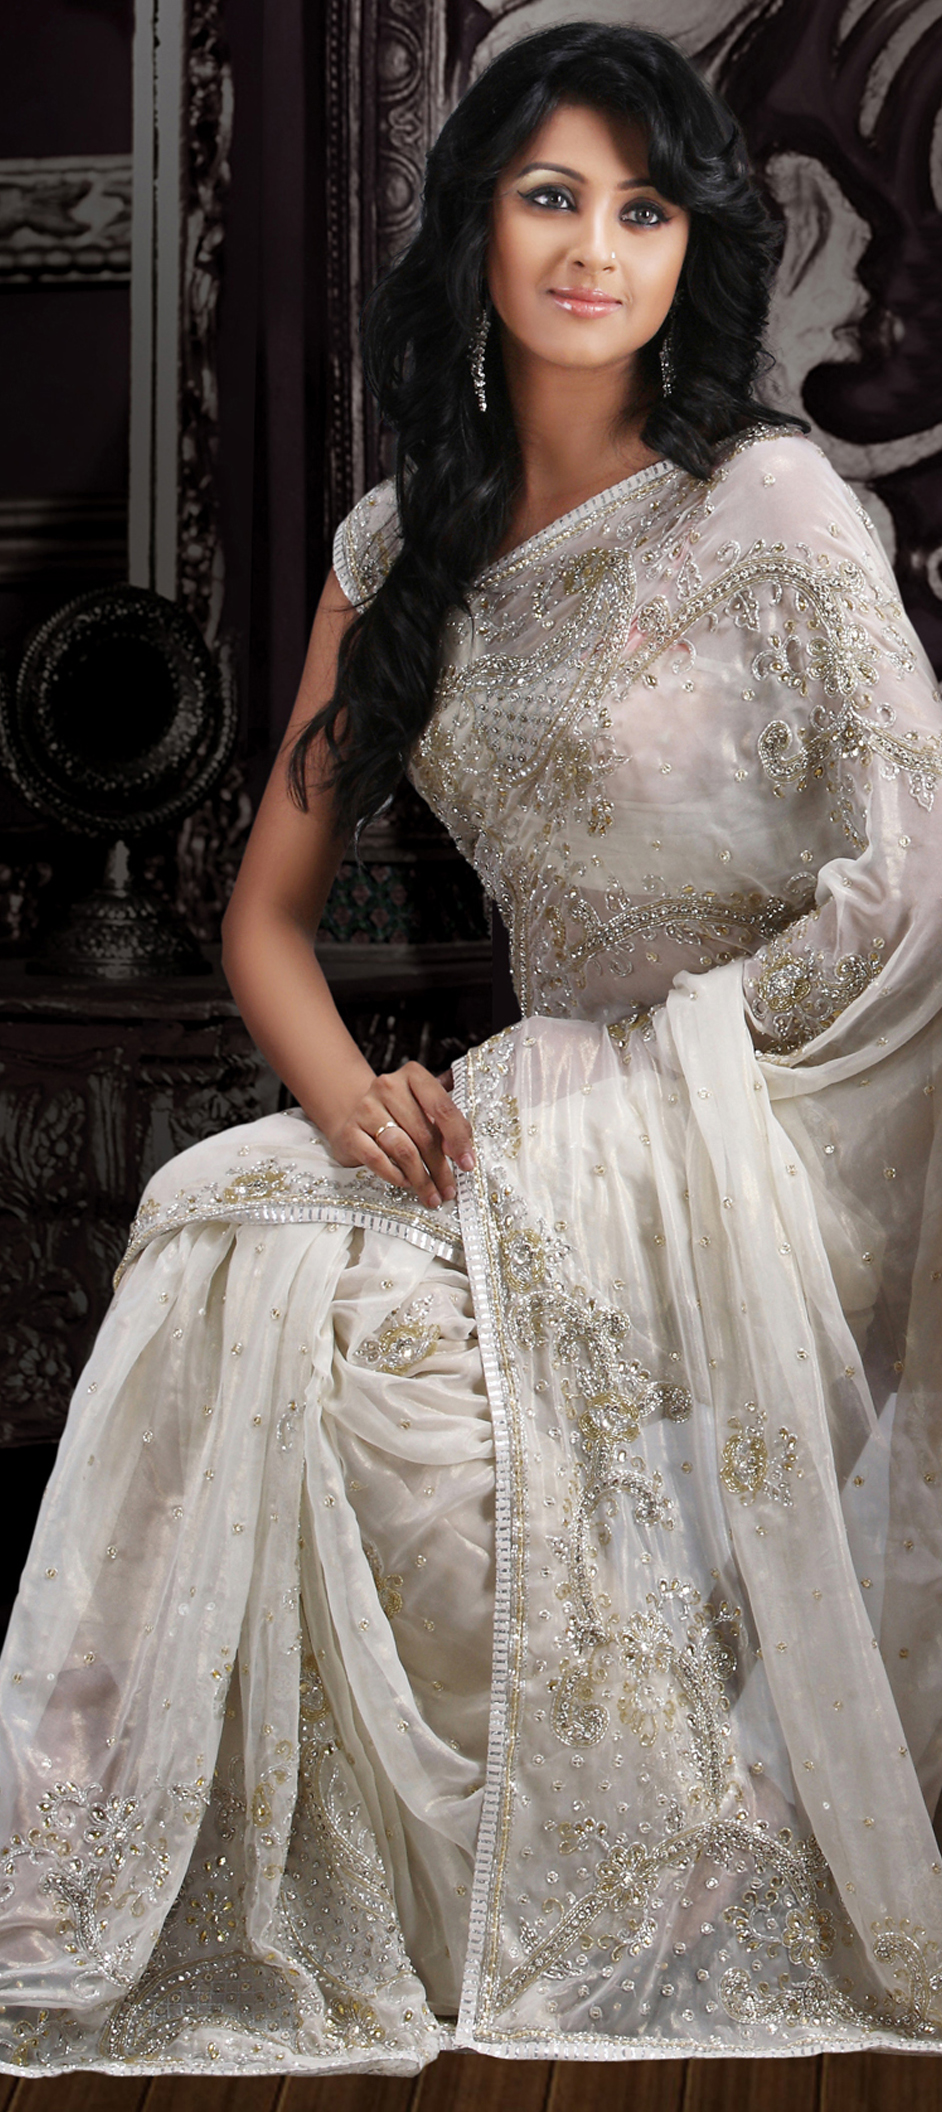 62048White And Off White Color Family Saree With Matching - White Indian Wedding Dress